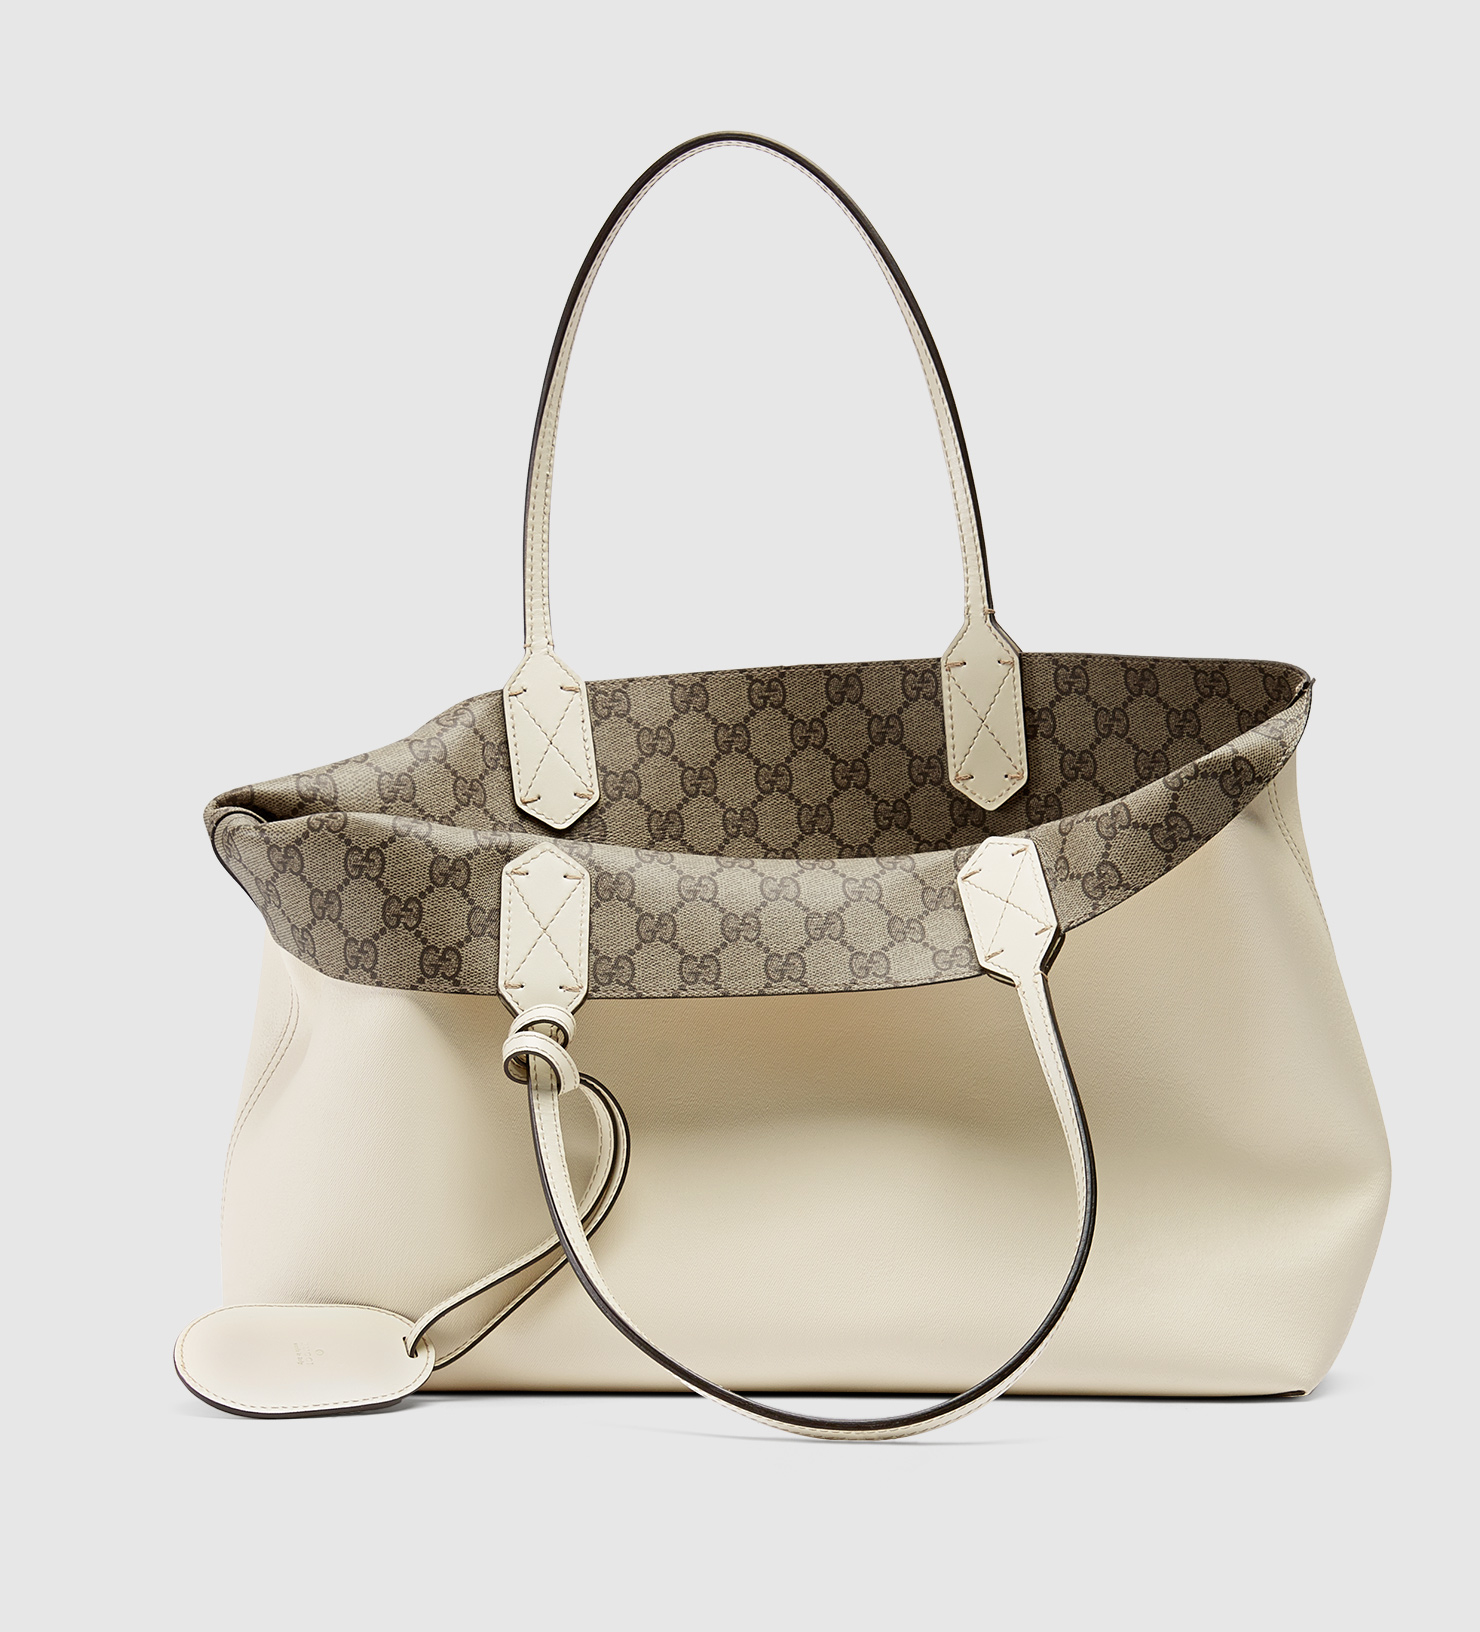 ad049a6090bf Gucci Reversible Gg Leather Tote in Natural - Lyst